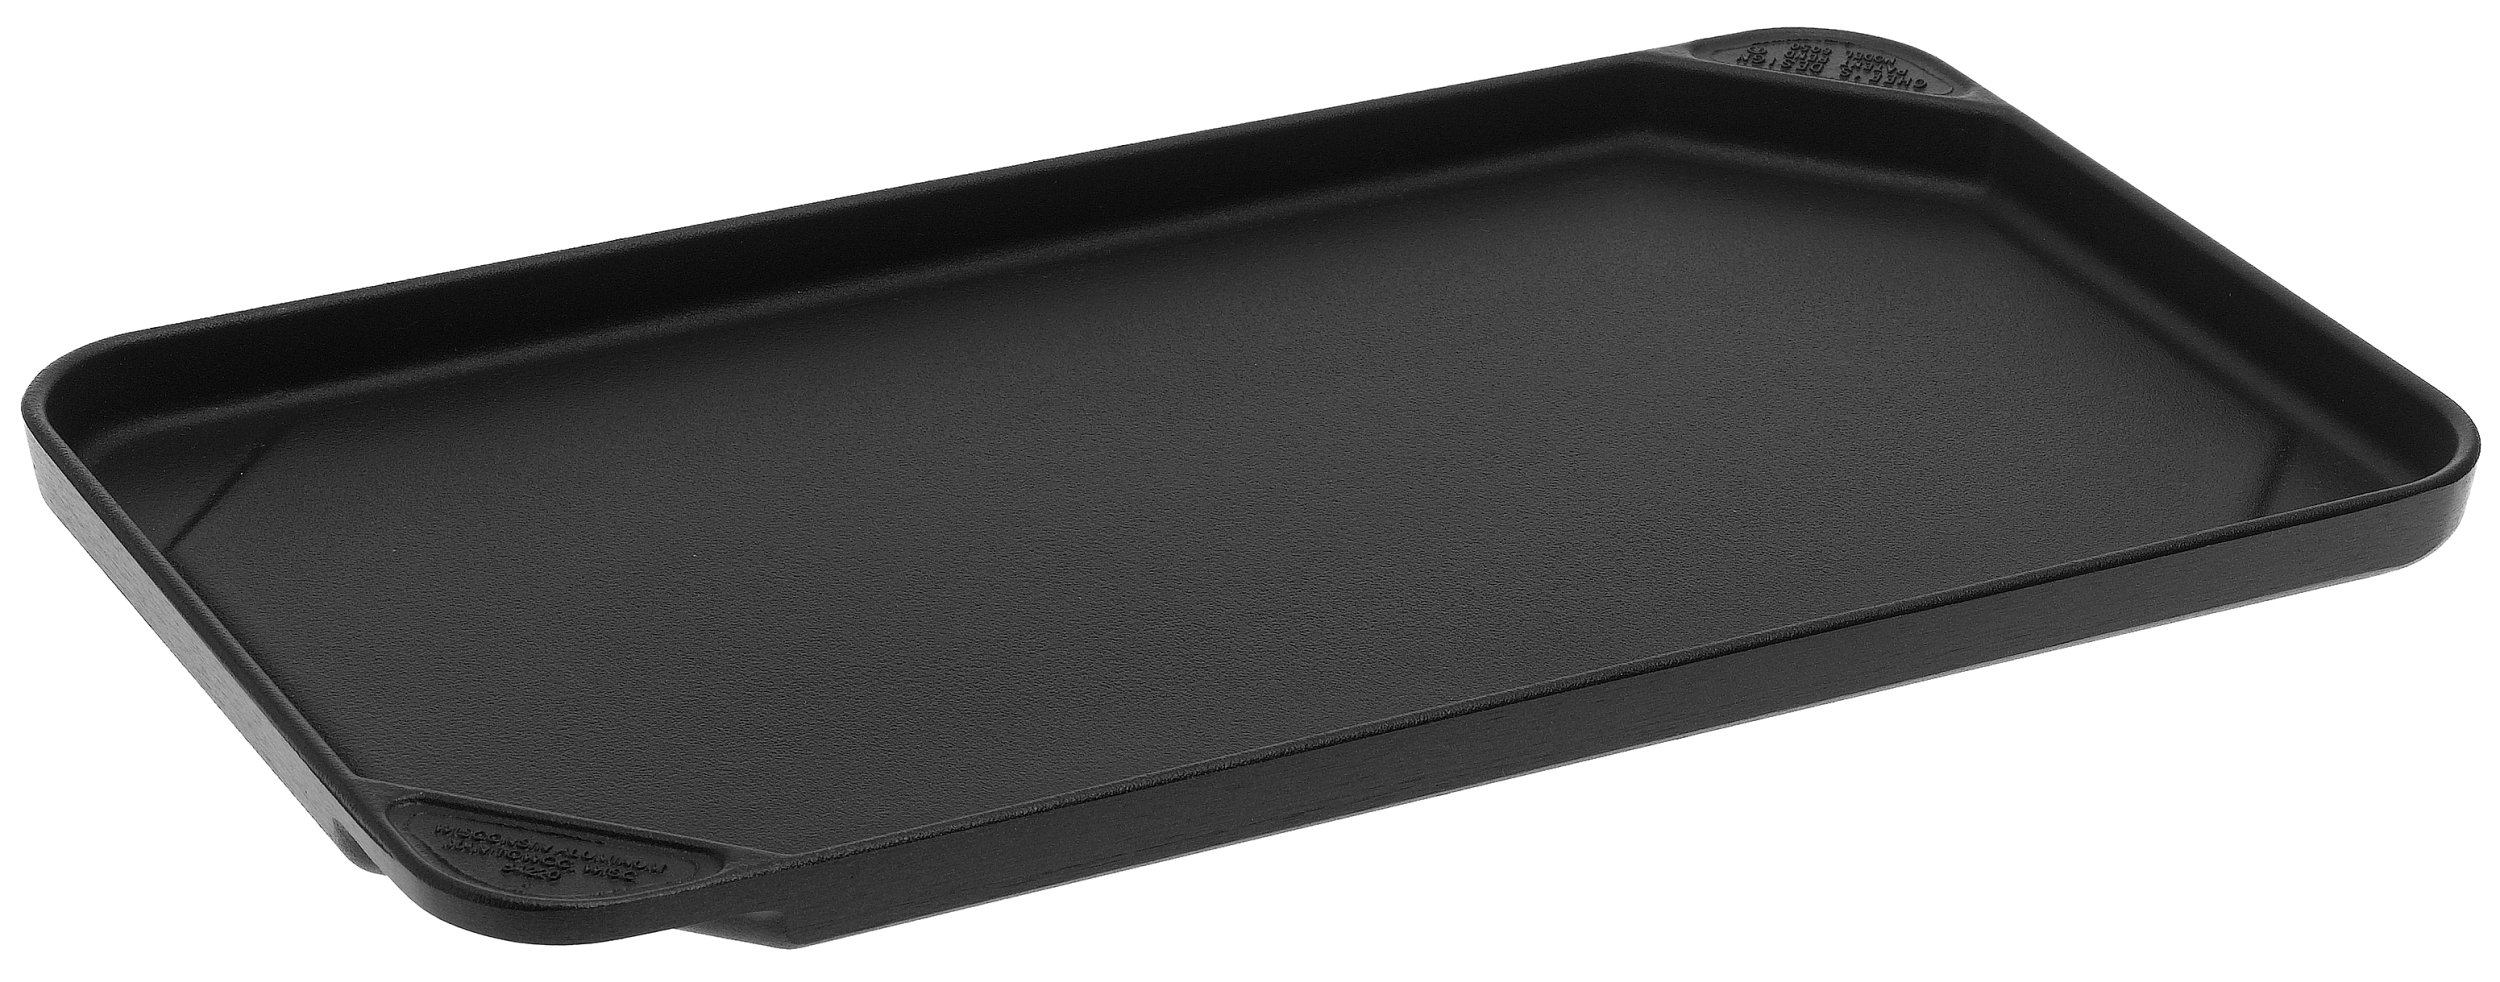 Chef's Design 11-by-19-1/2-Inch Ultimate Griddle by Chef's Design